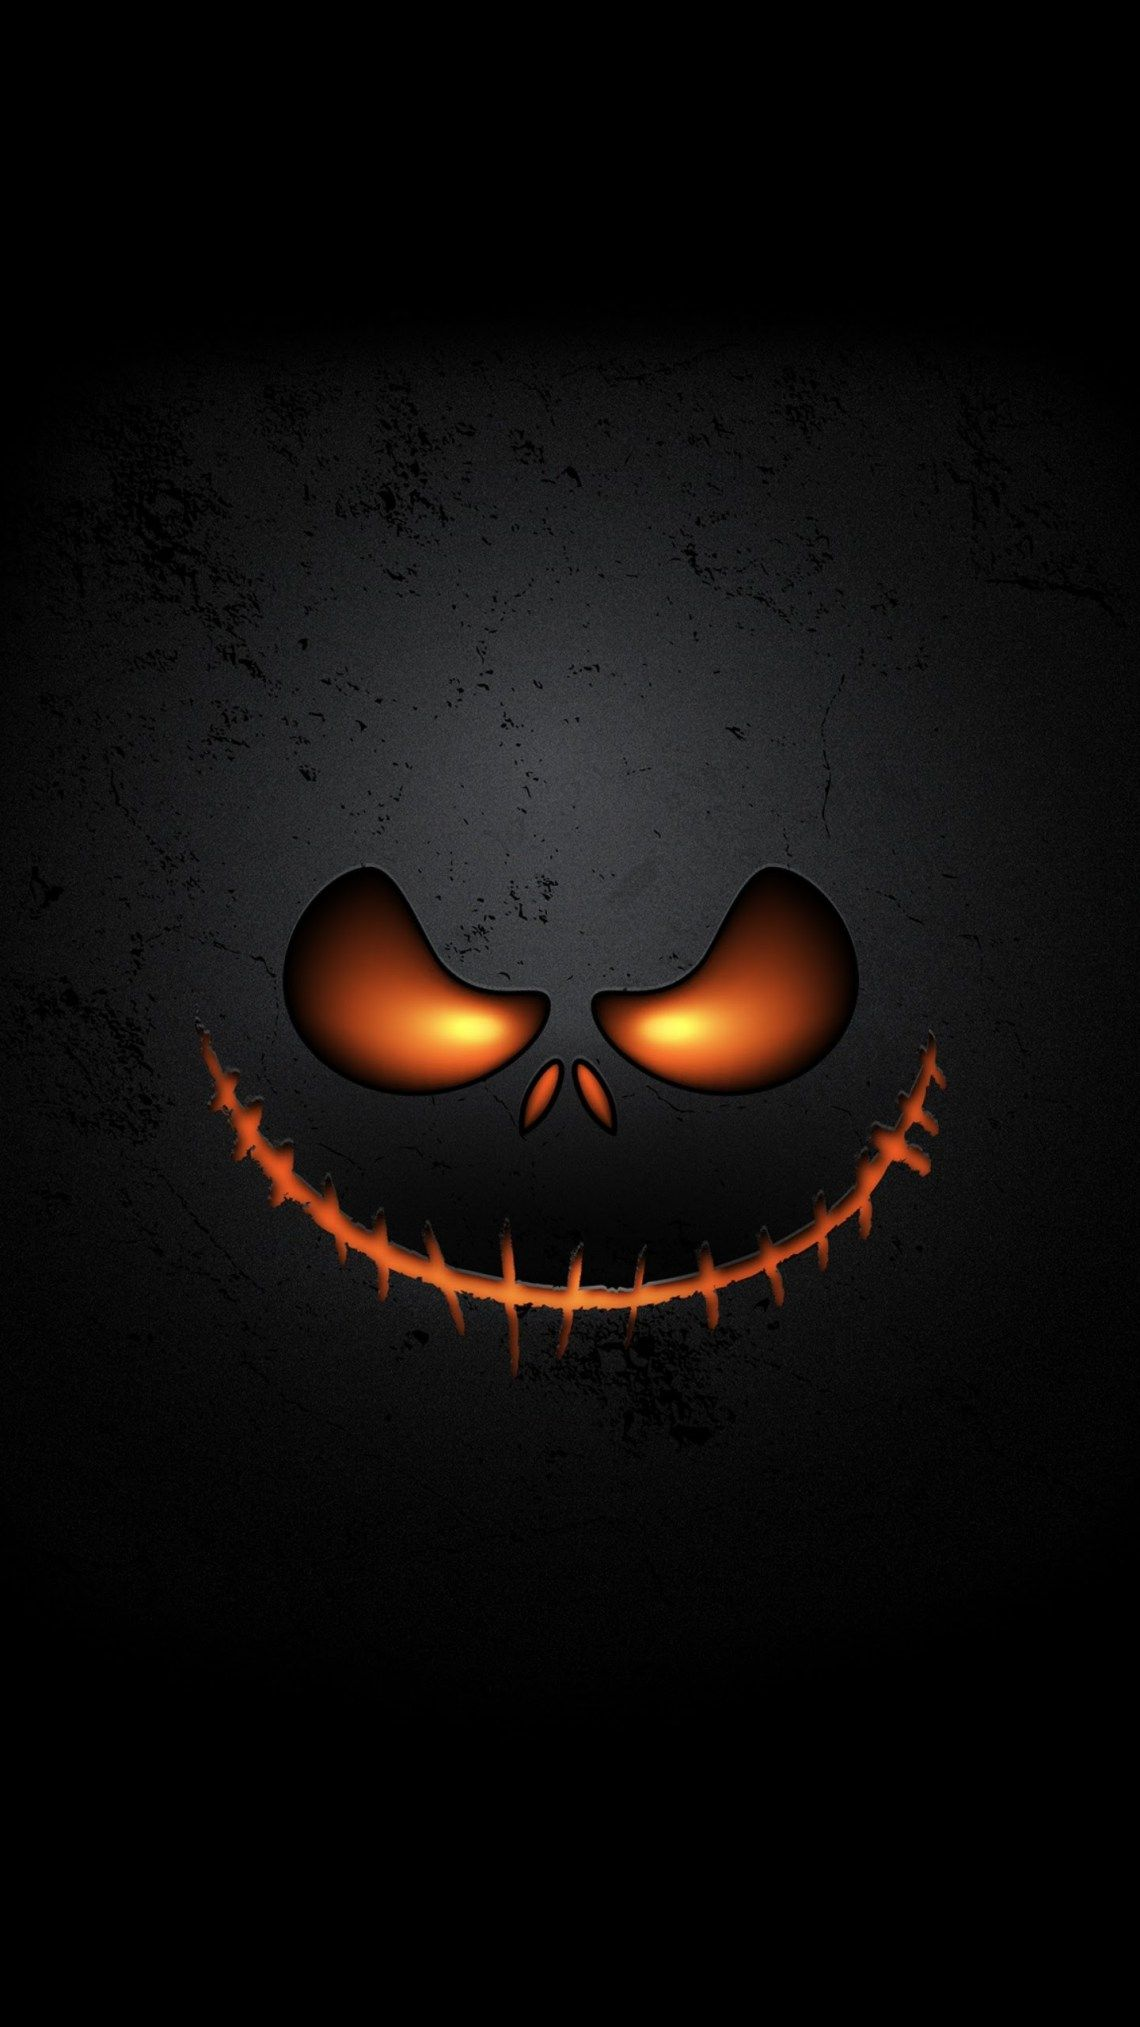 Cool Wallpaper Macbook Halloween - 23f5b8efaee07a37c2bc65d353abb927  HD_761719.jpg